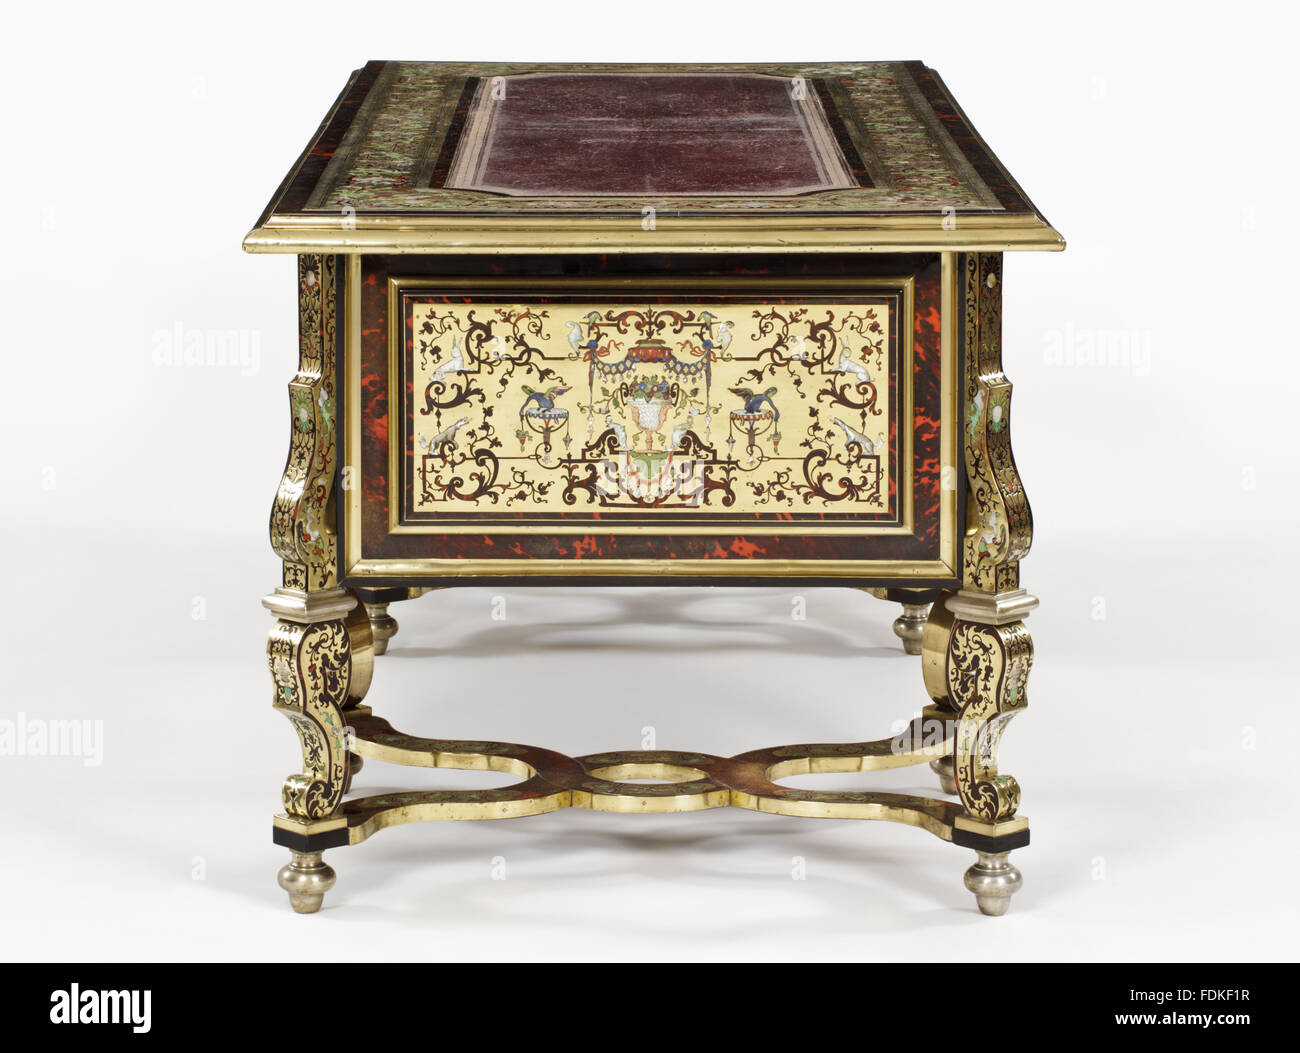 Louis xiv decoration stock photos louis xiv decoration stock